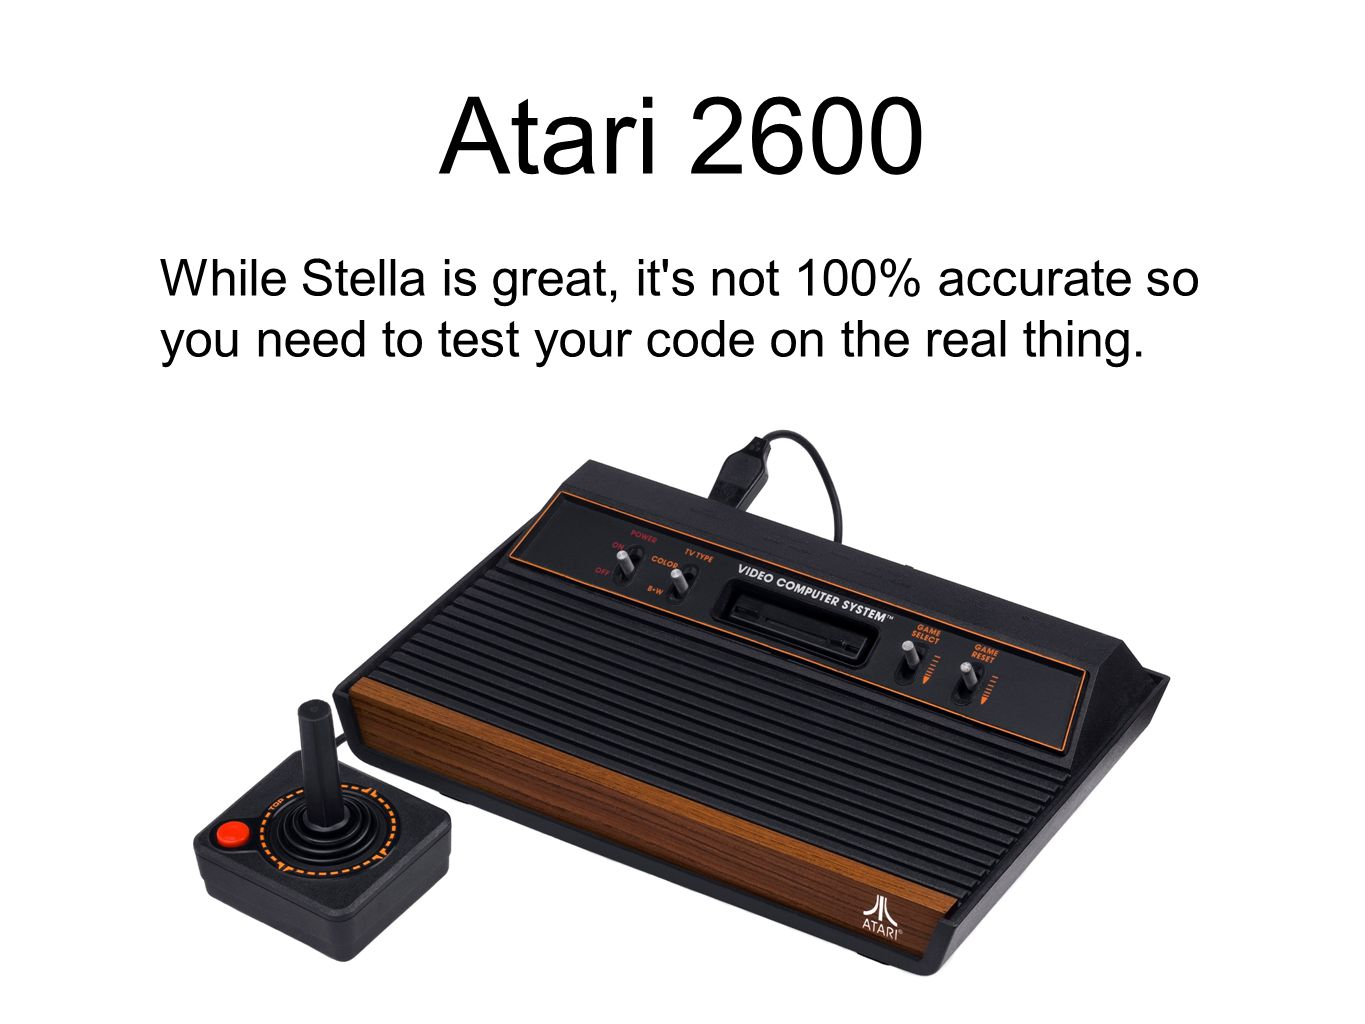 Atari 2600 While Stella is great, it's not 100% accurate so you need to test your code on the real thing.